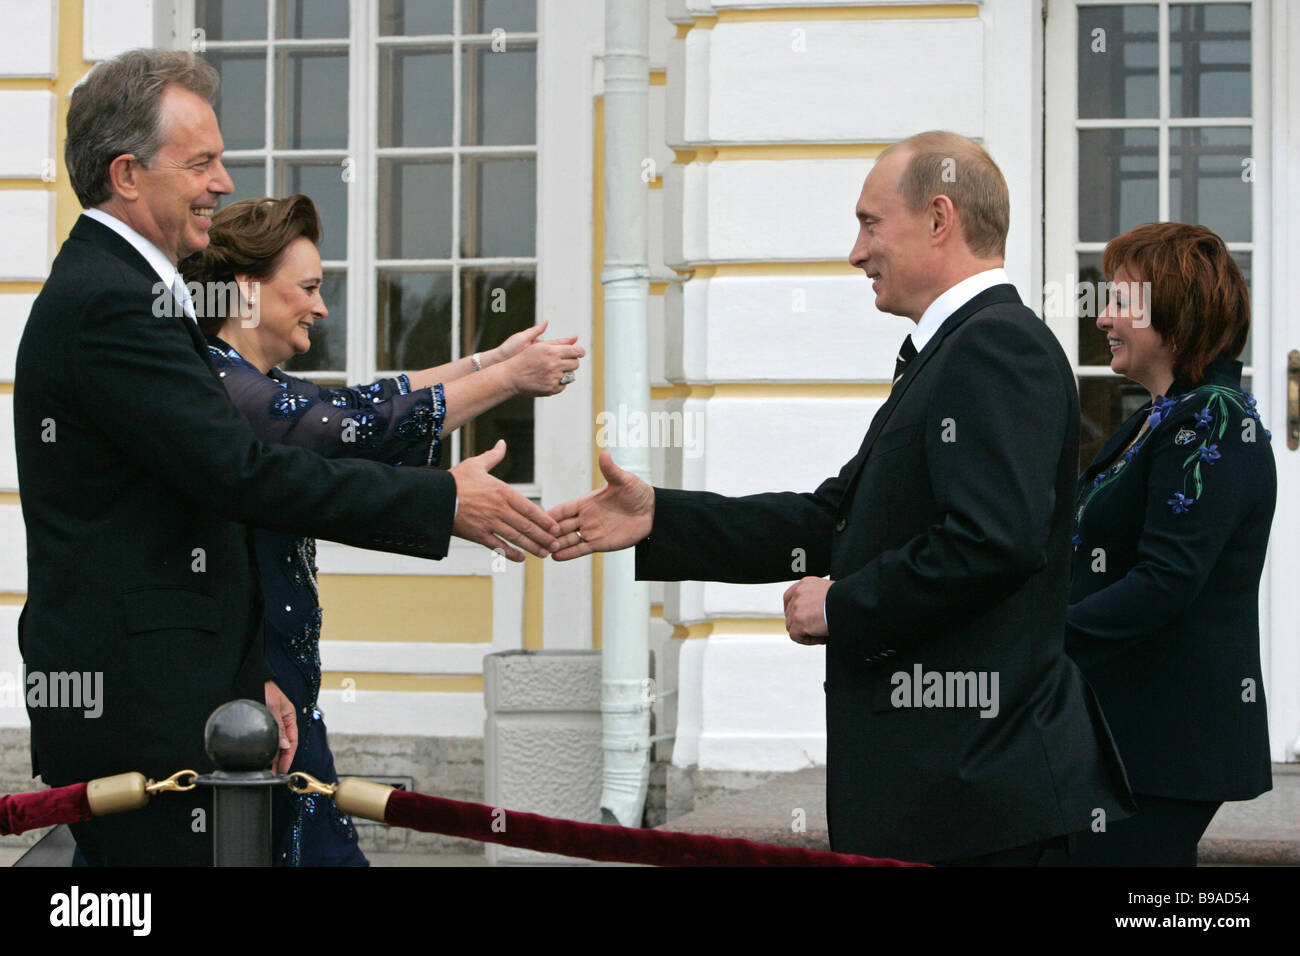 British Prime Minister Tony Blair with his wife and Russian President Vladimir Putin with his wife left to right - Stock Image